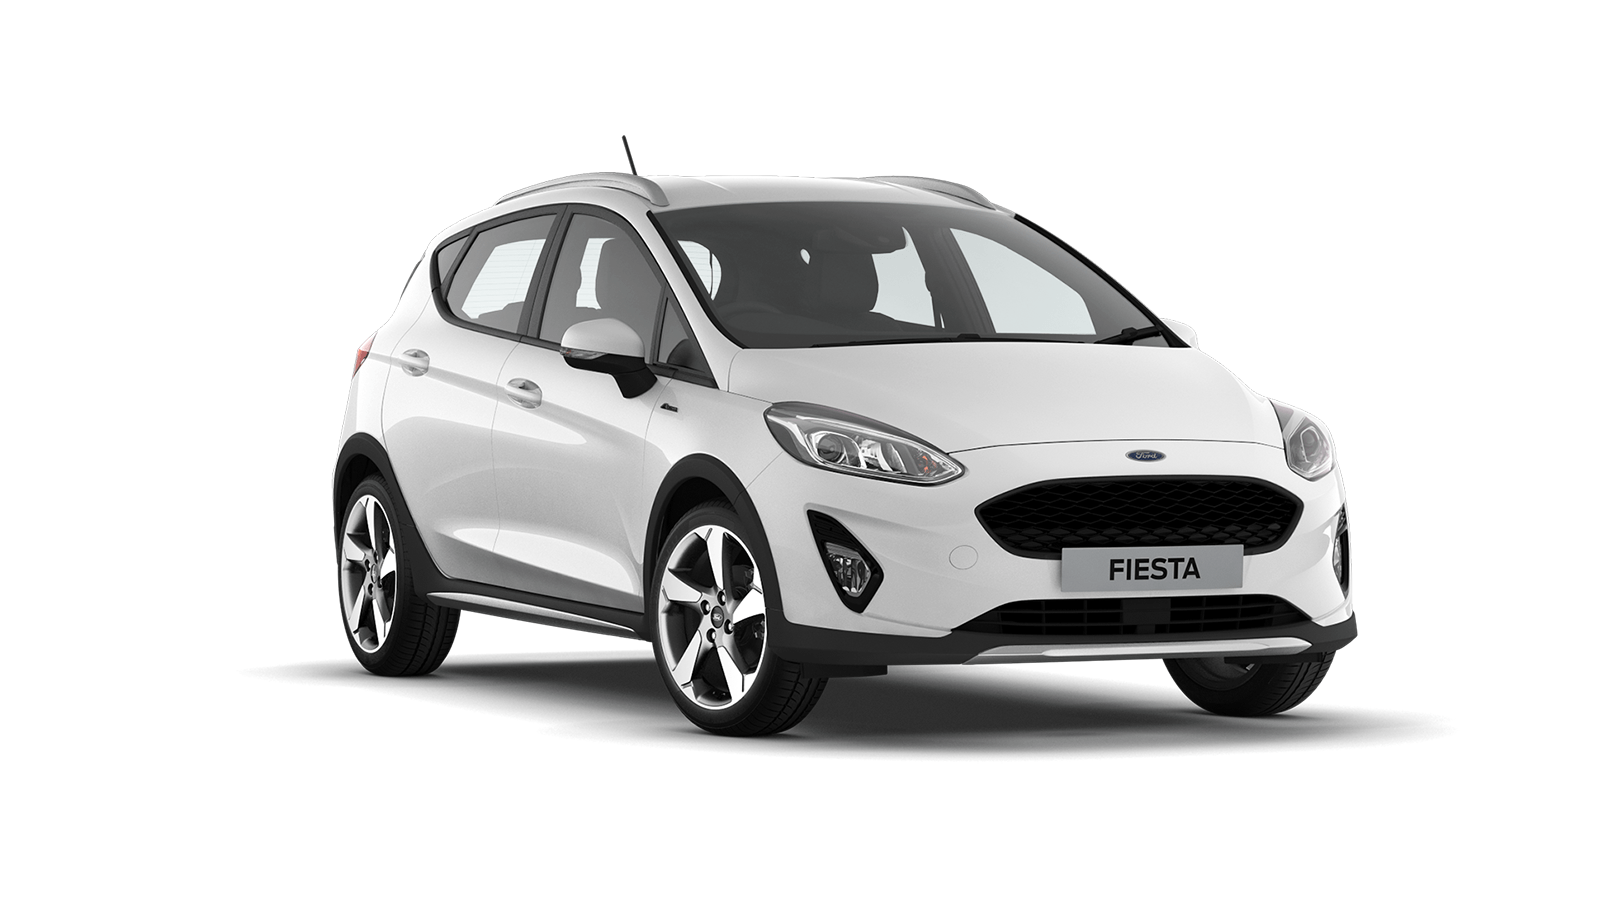 https://www.dealerinternet.co.uk/images/FIESTA%20B299/2019/5%20Door/ActiveX/FROZEN-WHITE.png